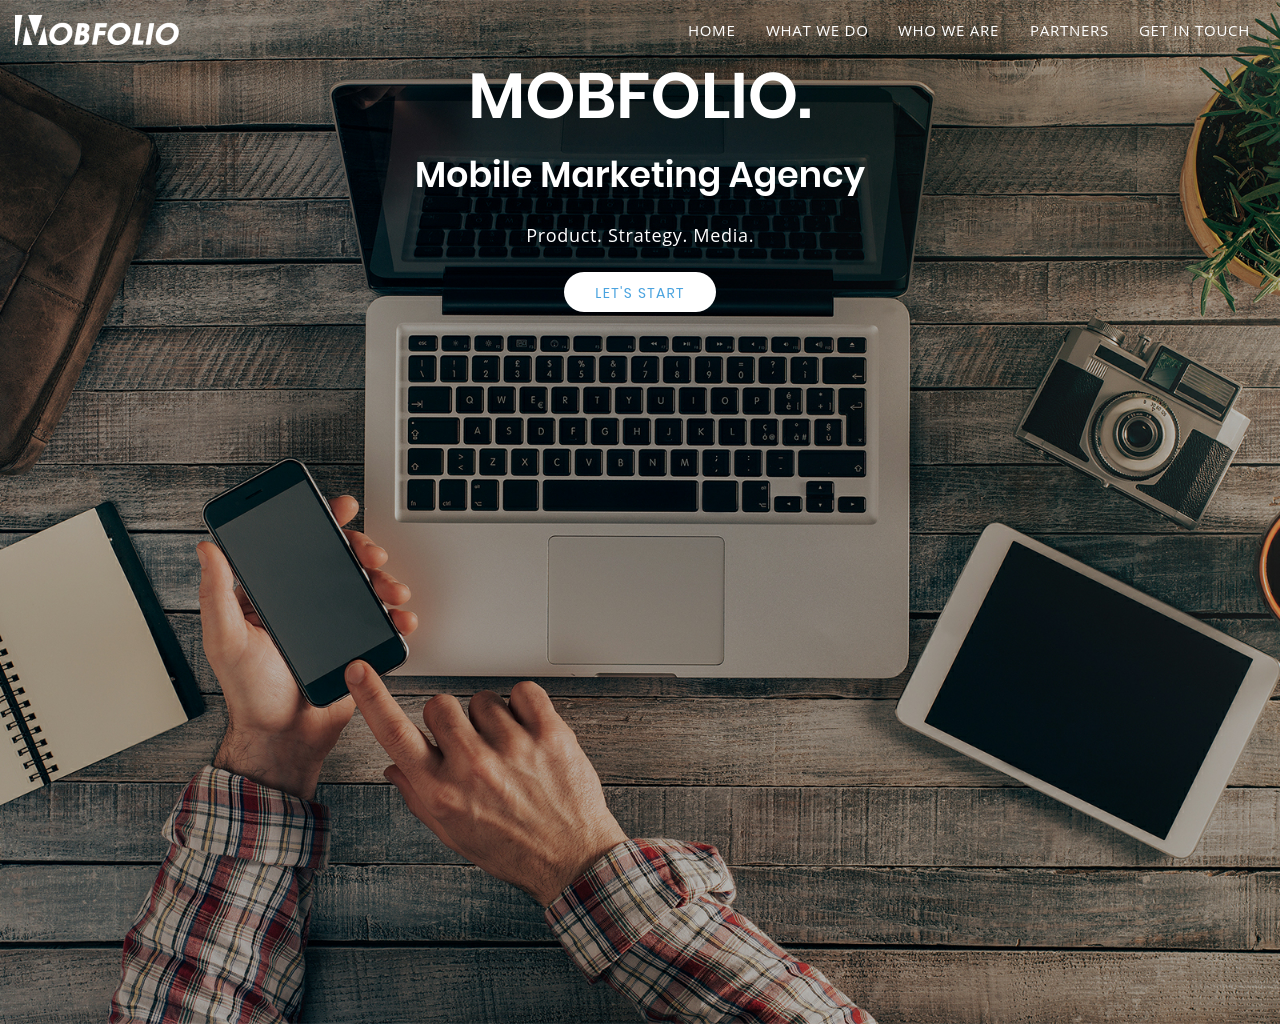 Mobfolio-(Mobile-Marketing-Agency)-Advertising-Reviews-Pricing